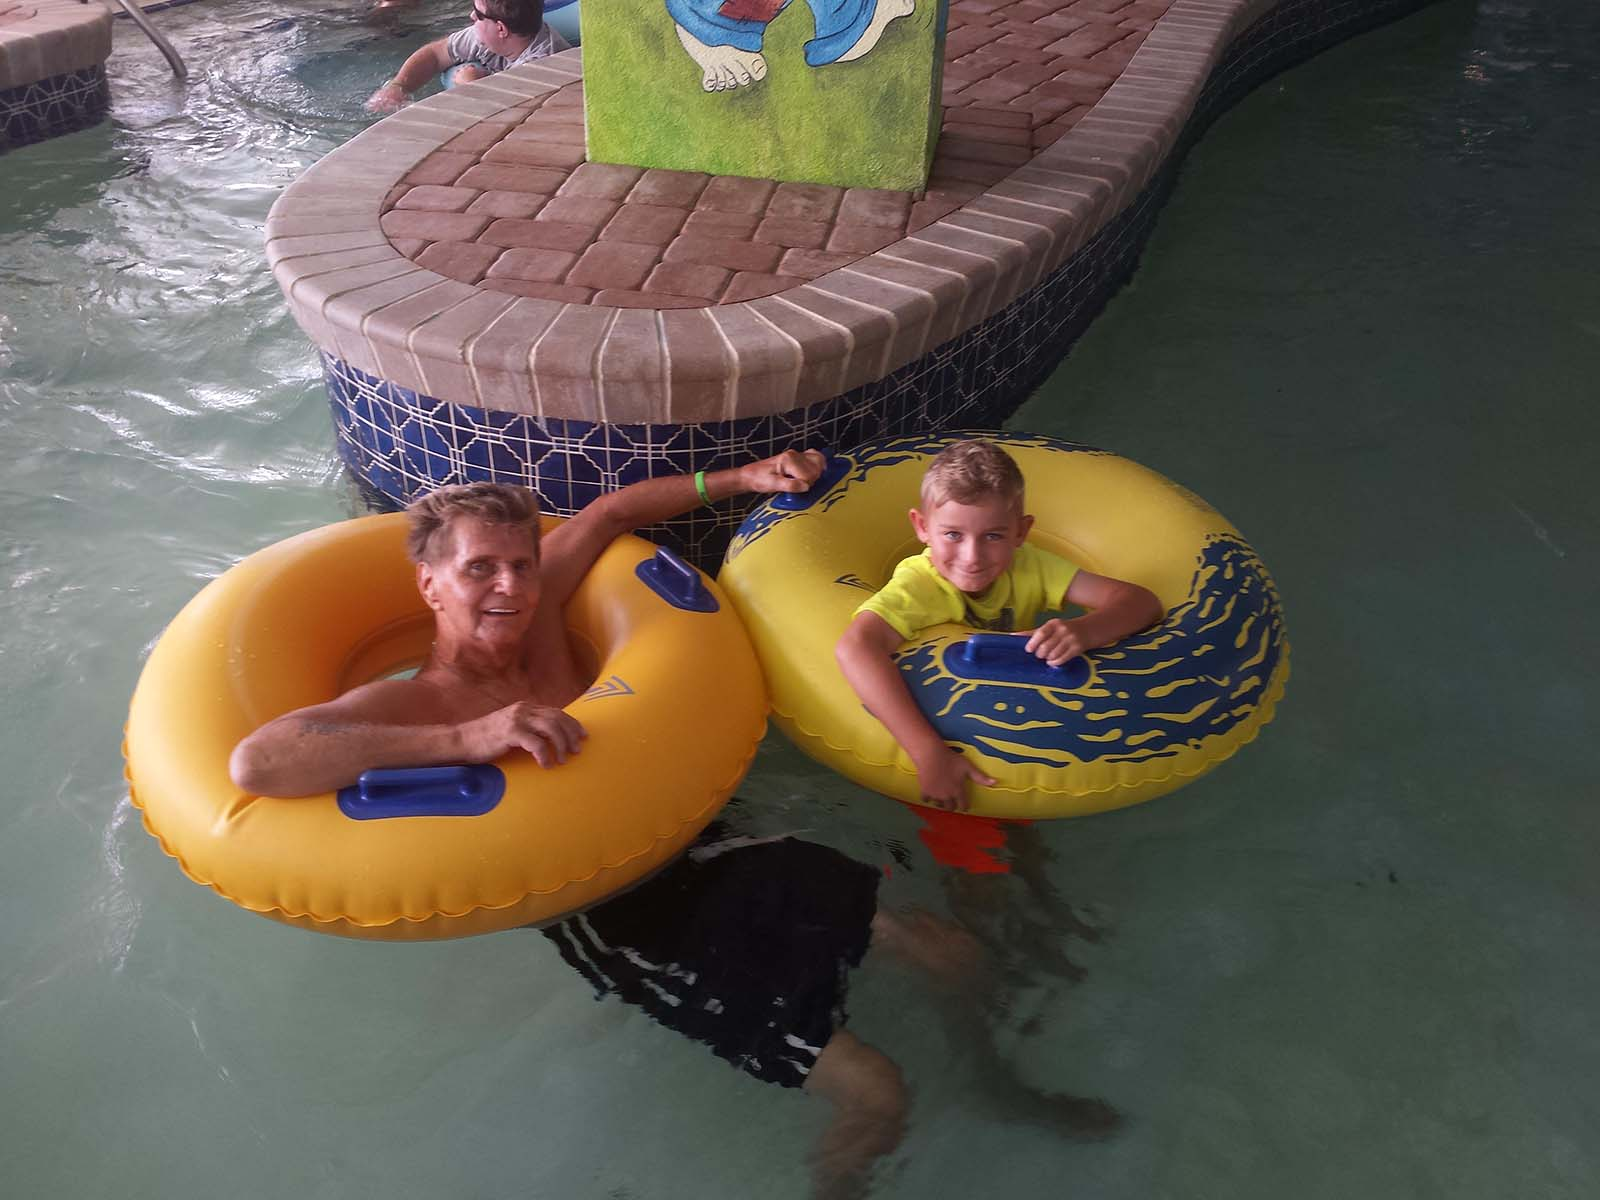 Grandpa and grandkid in lazy river together